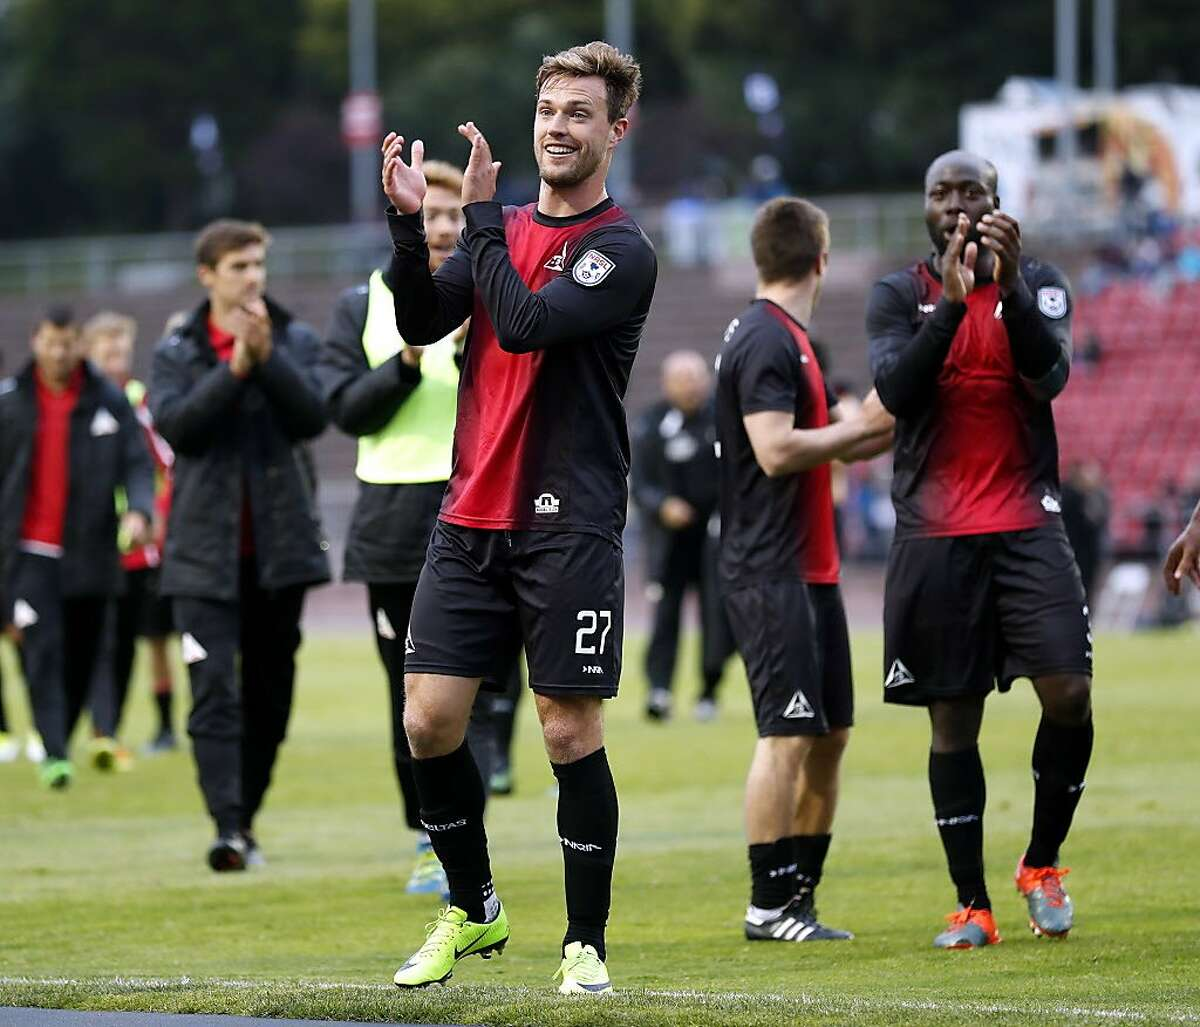 San Francisco Deltas' Andrew Lubahn (center) and Nana Attakora (right) applaud fans after the Deltas' 2-0 win over Puerto Rico at Kezar Stadium in San Francisco, Calif., on Sunday, July 2, 2017.